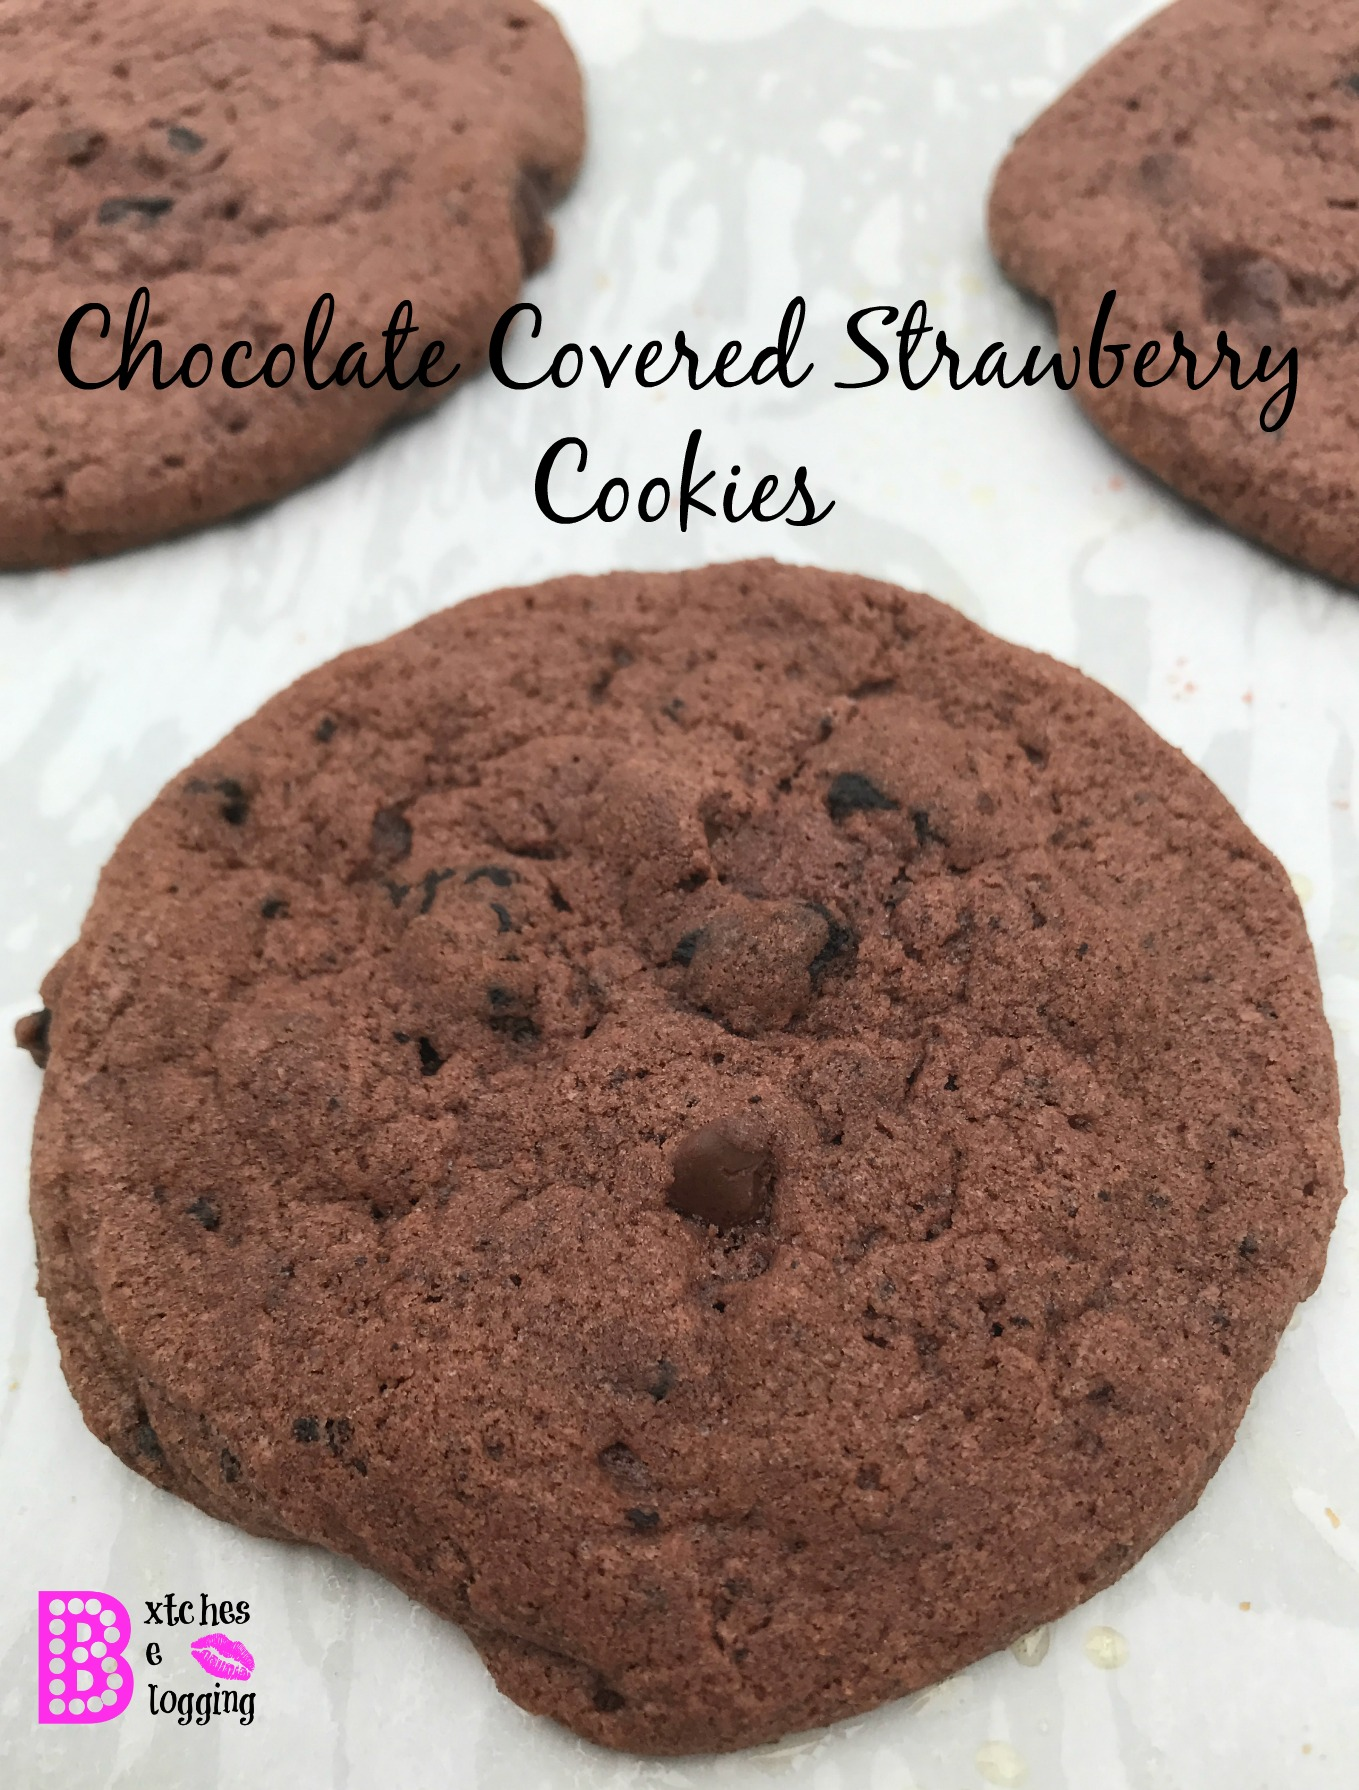 Chocolate Covered Strawberry Cookies   Recipe on www.bxtchesbeblogging.com